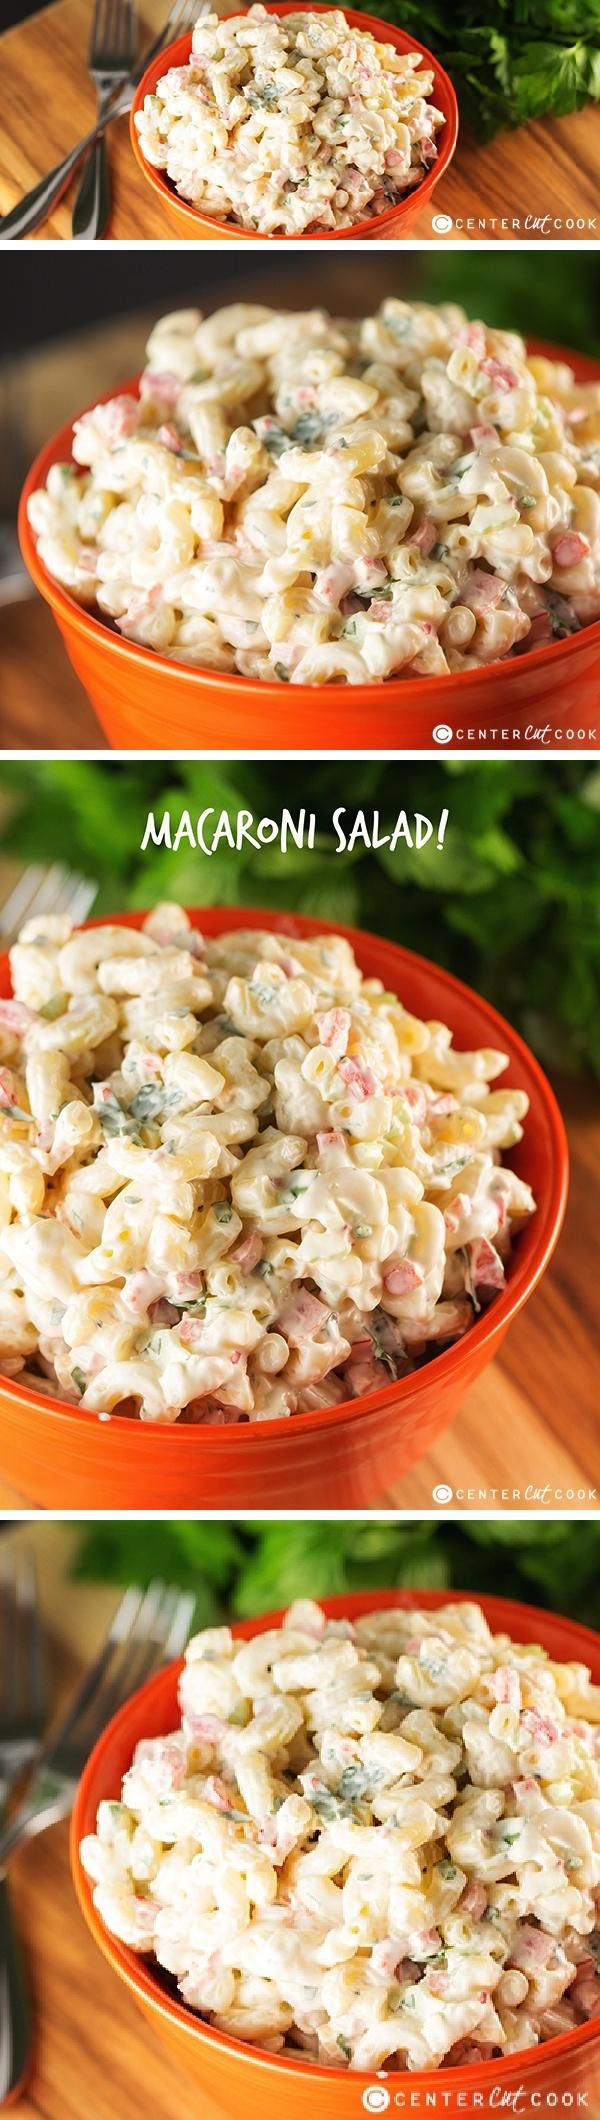 EASY MACARONI SALAD, just like you'd get from the deli at the grocery store! This basic version of Classic Macaroni Salad can be modified to be made with tuna, peas, or whatever add-ins you's like!